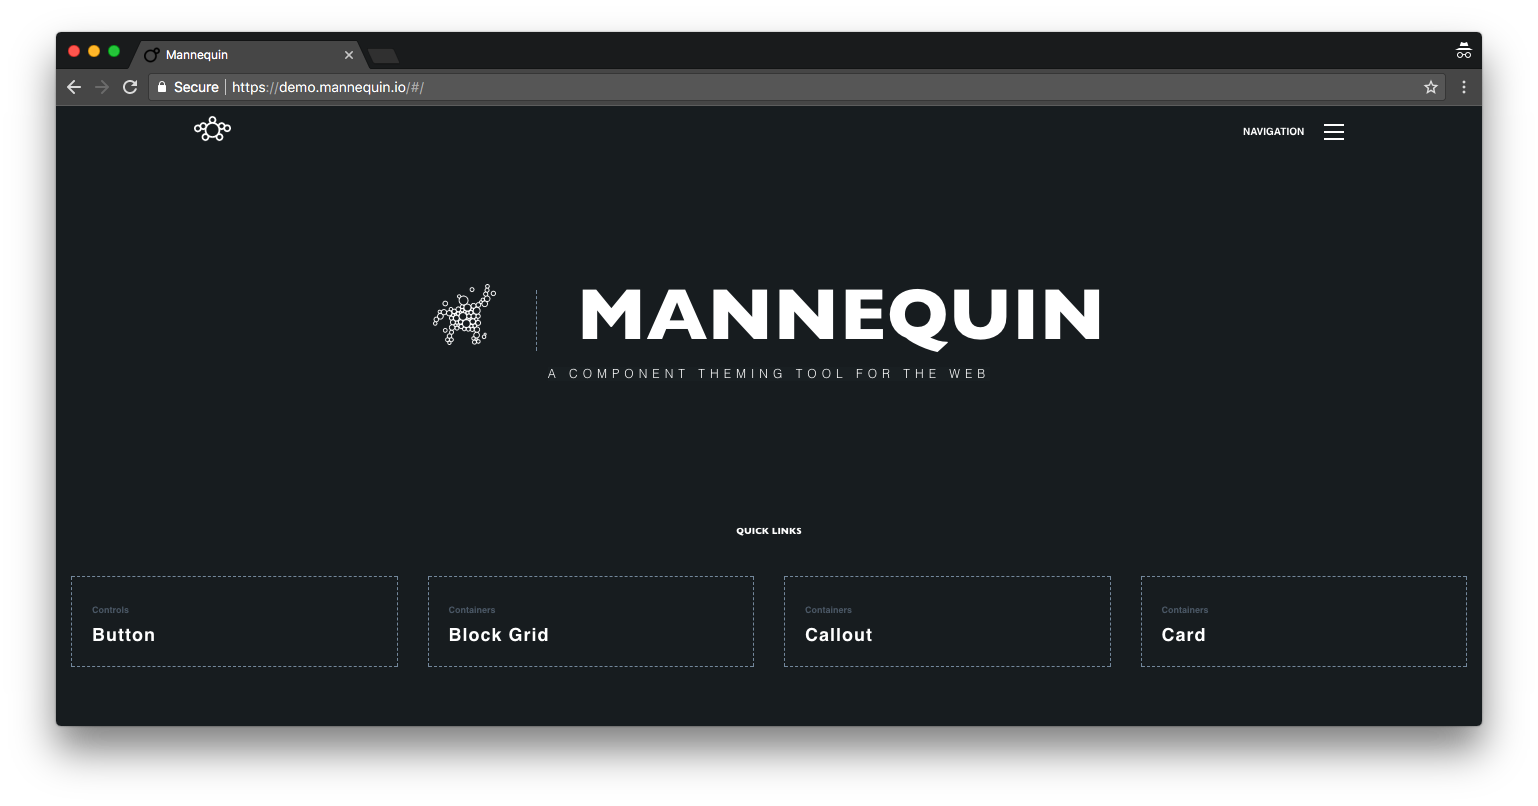 Screenshot of the Mannequin website. The mascot waves hello next to the site title and navigation.